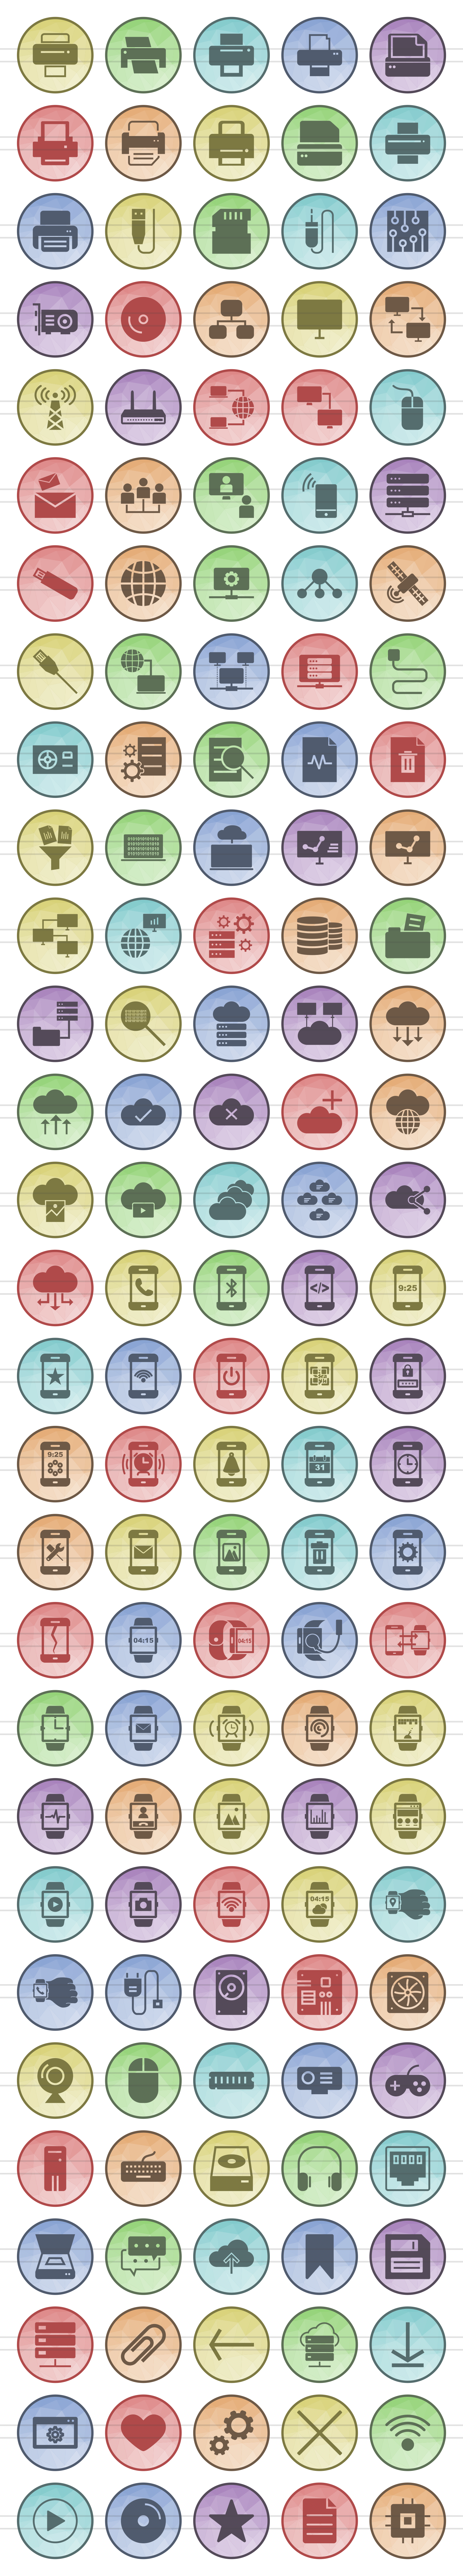 145 Hardware Filled Low Poly Icons example image 2